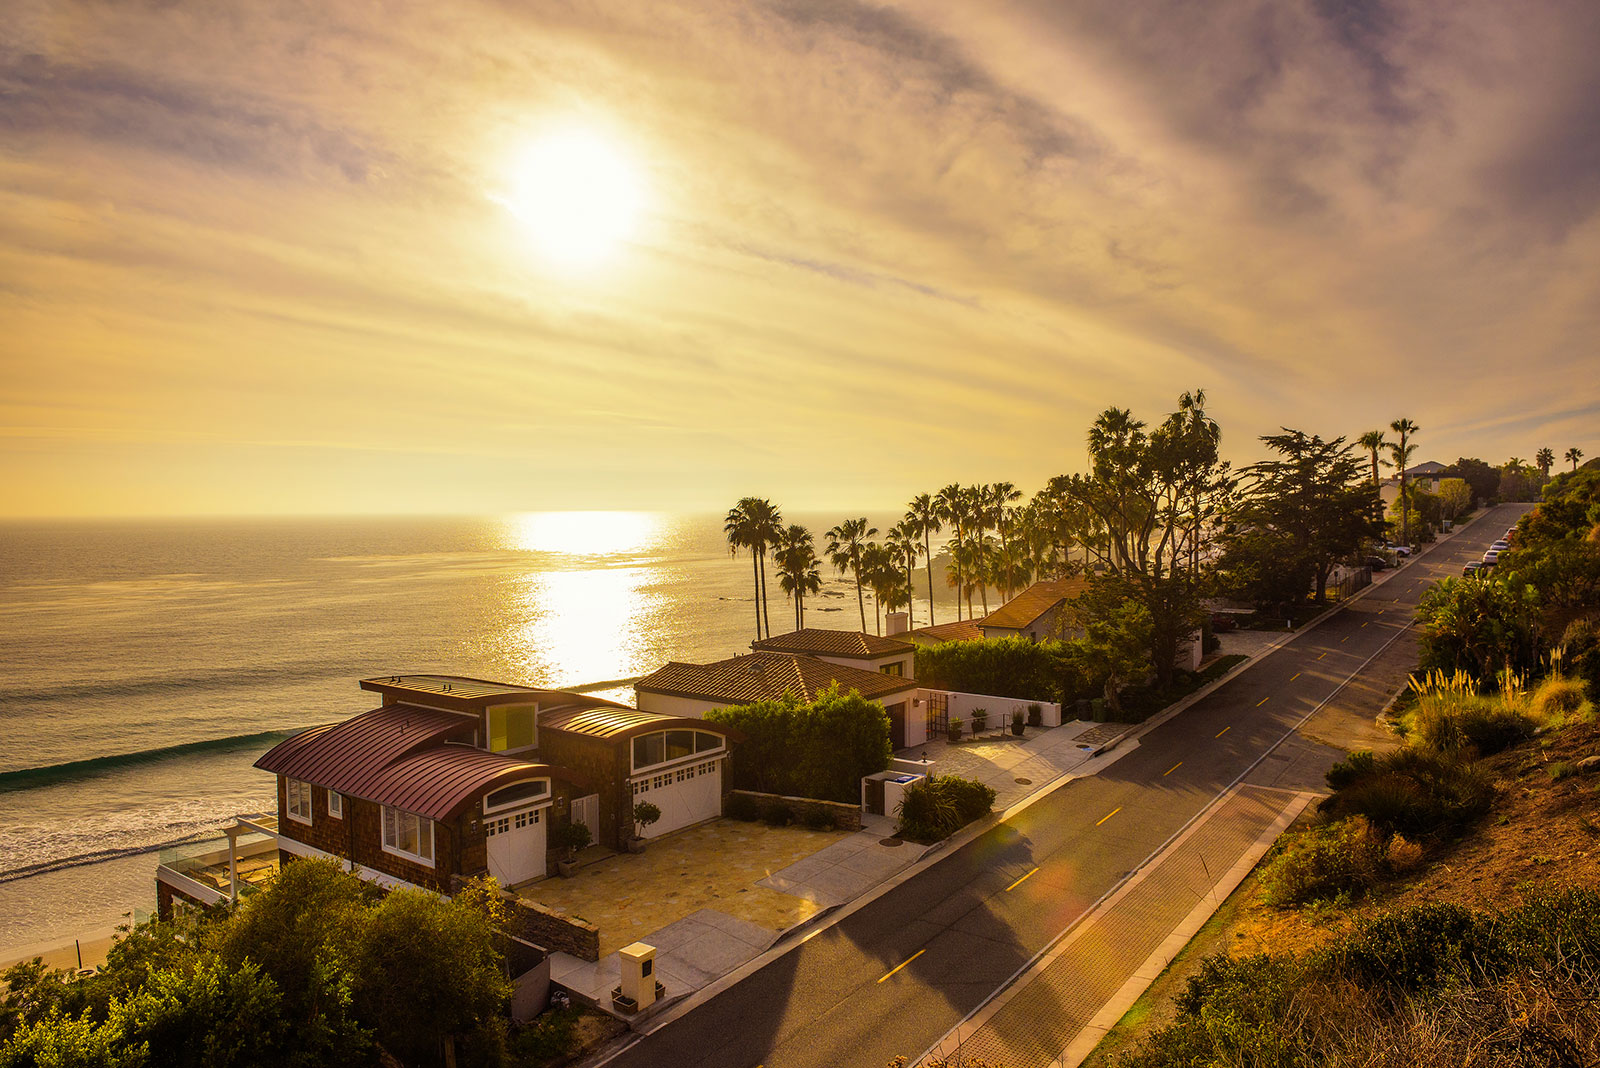 Oceanfront homes of Malibu beach in California